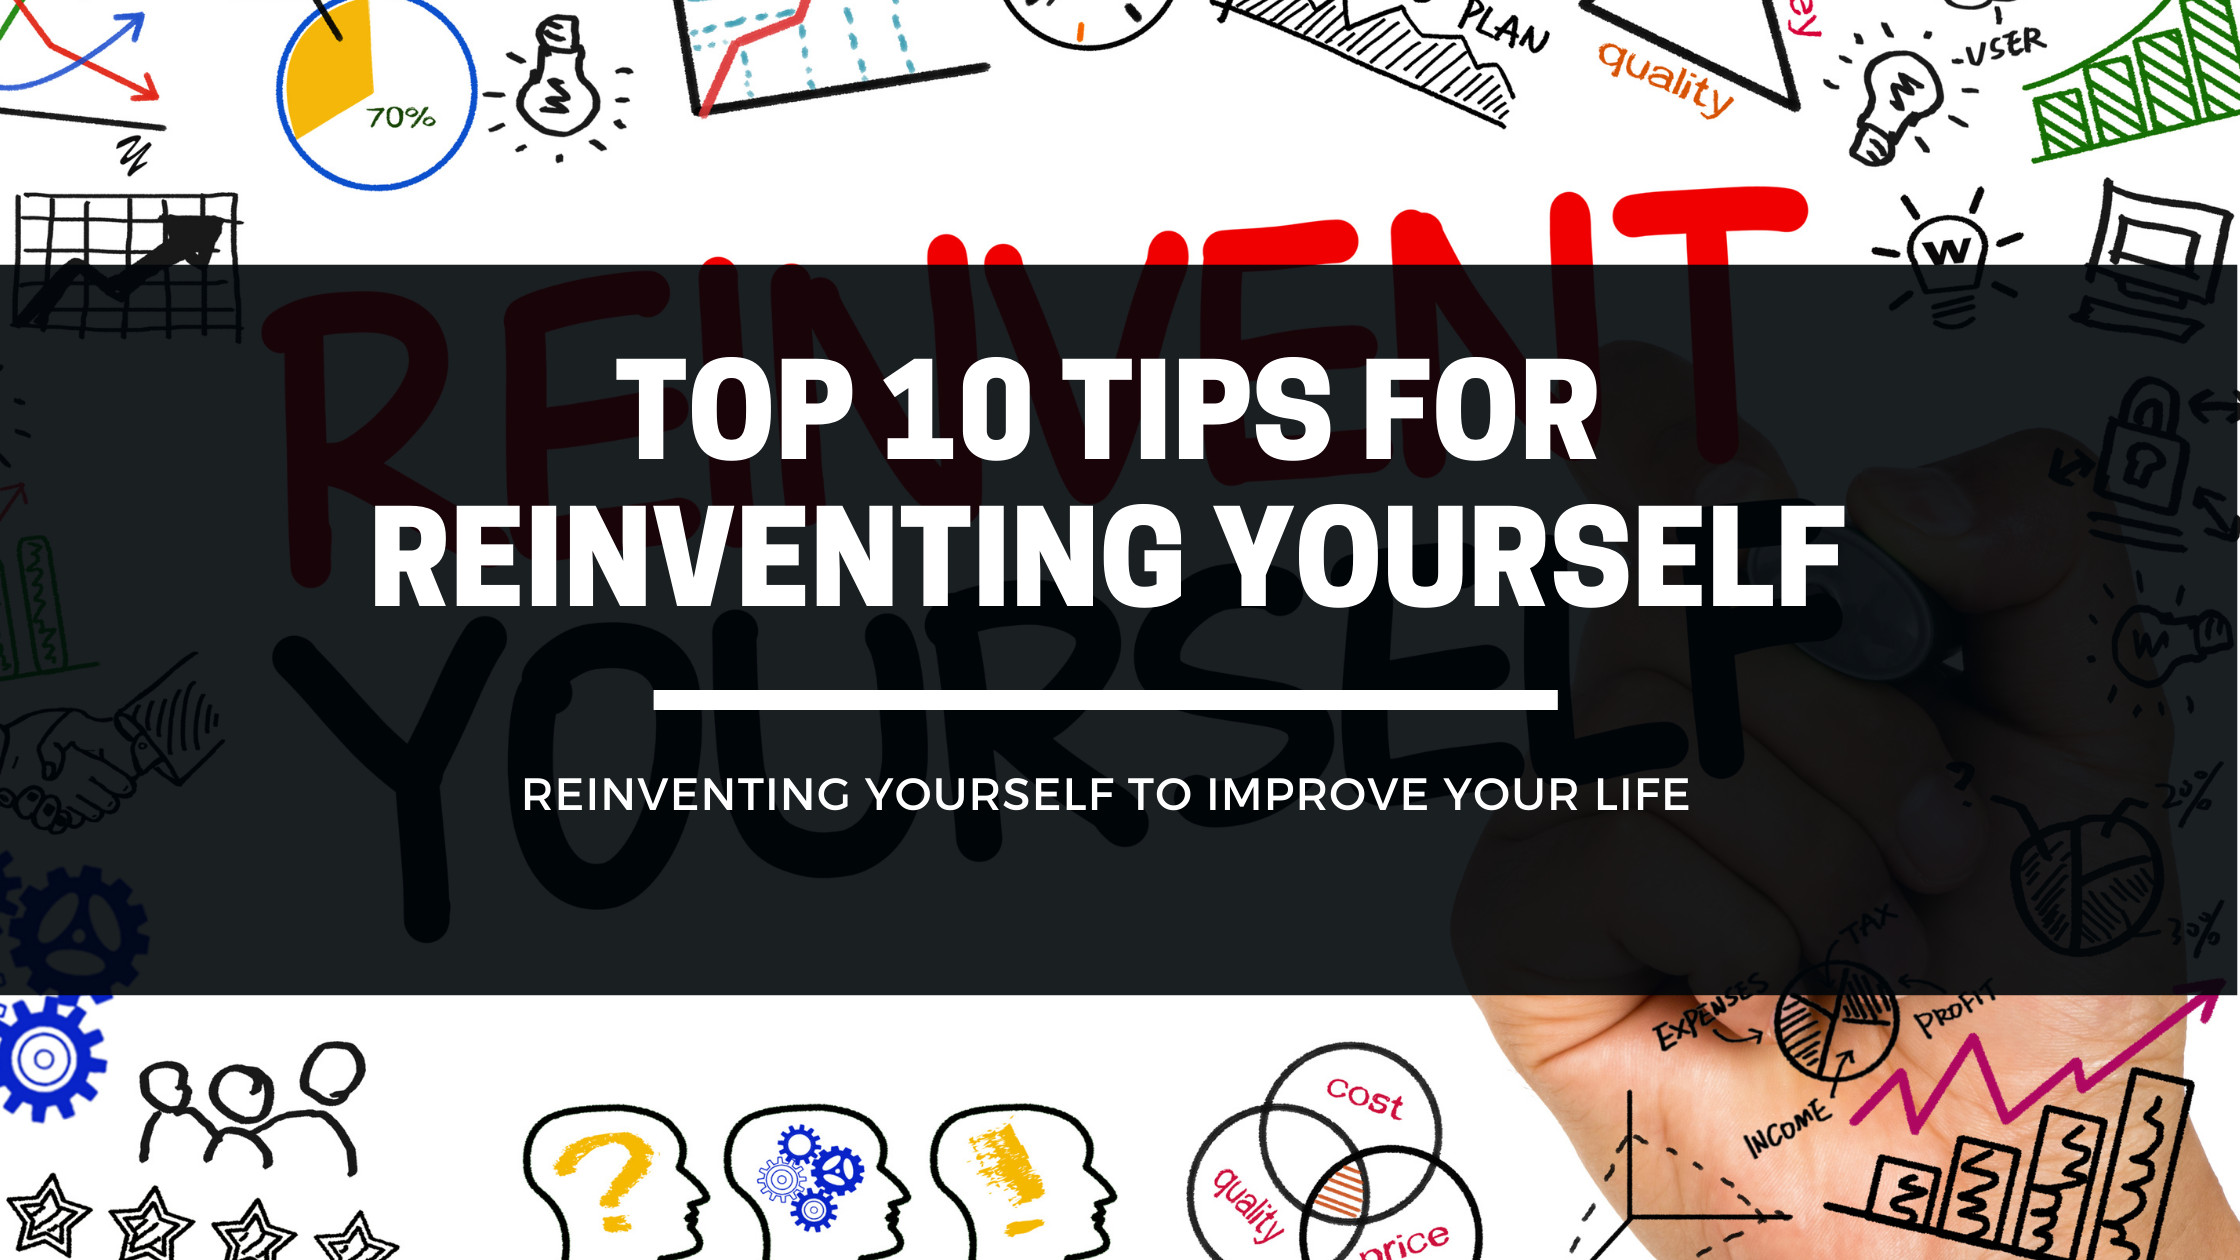 Top 10 Tips For Reinventing Yourself